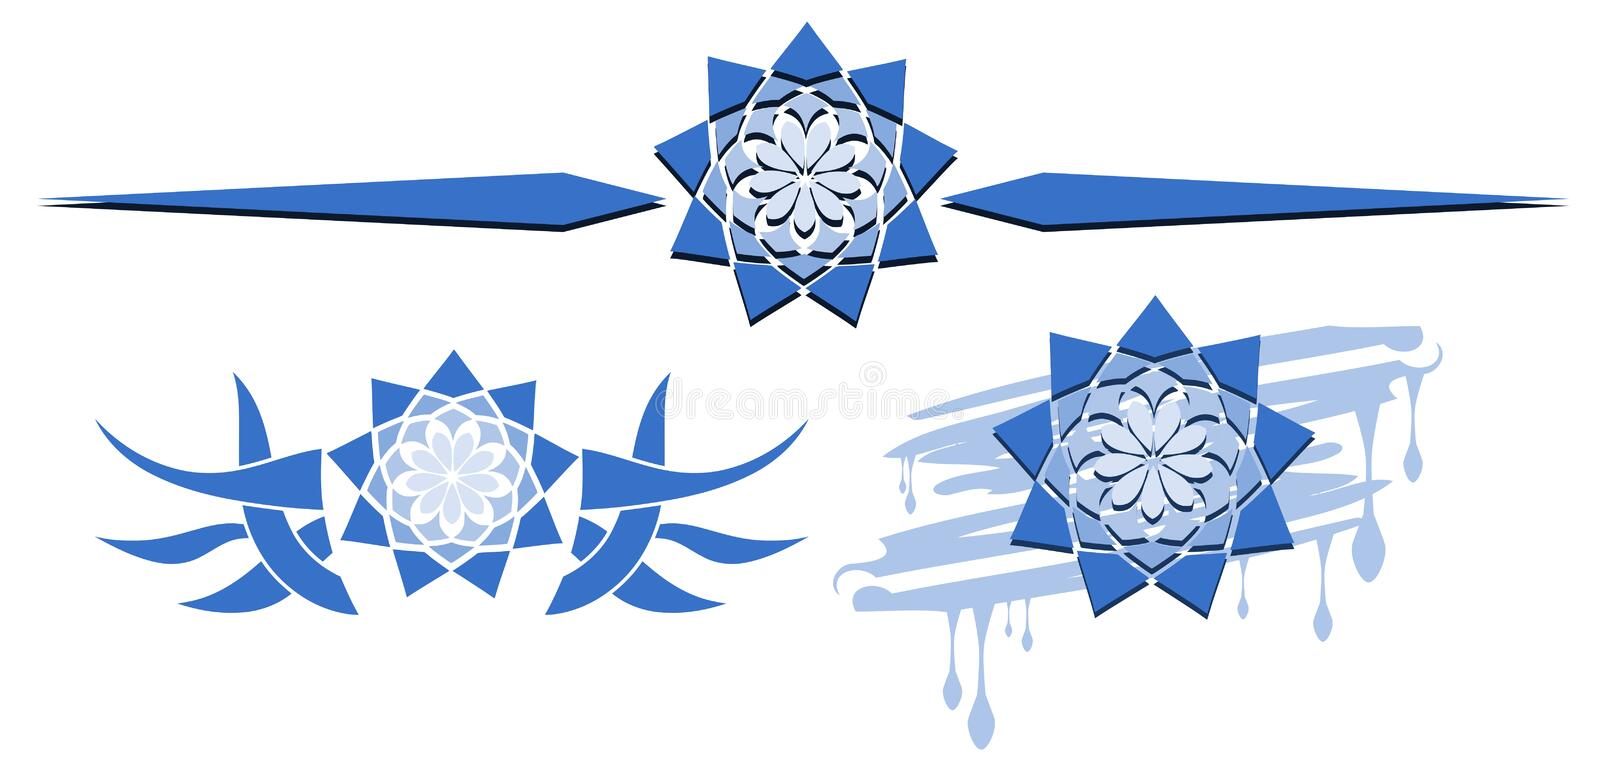 Set of stylized logos with flowers in blue isolated vector illustration